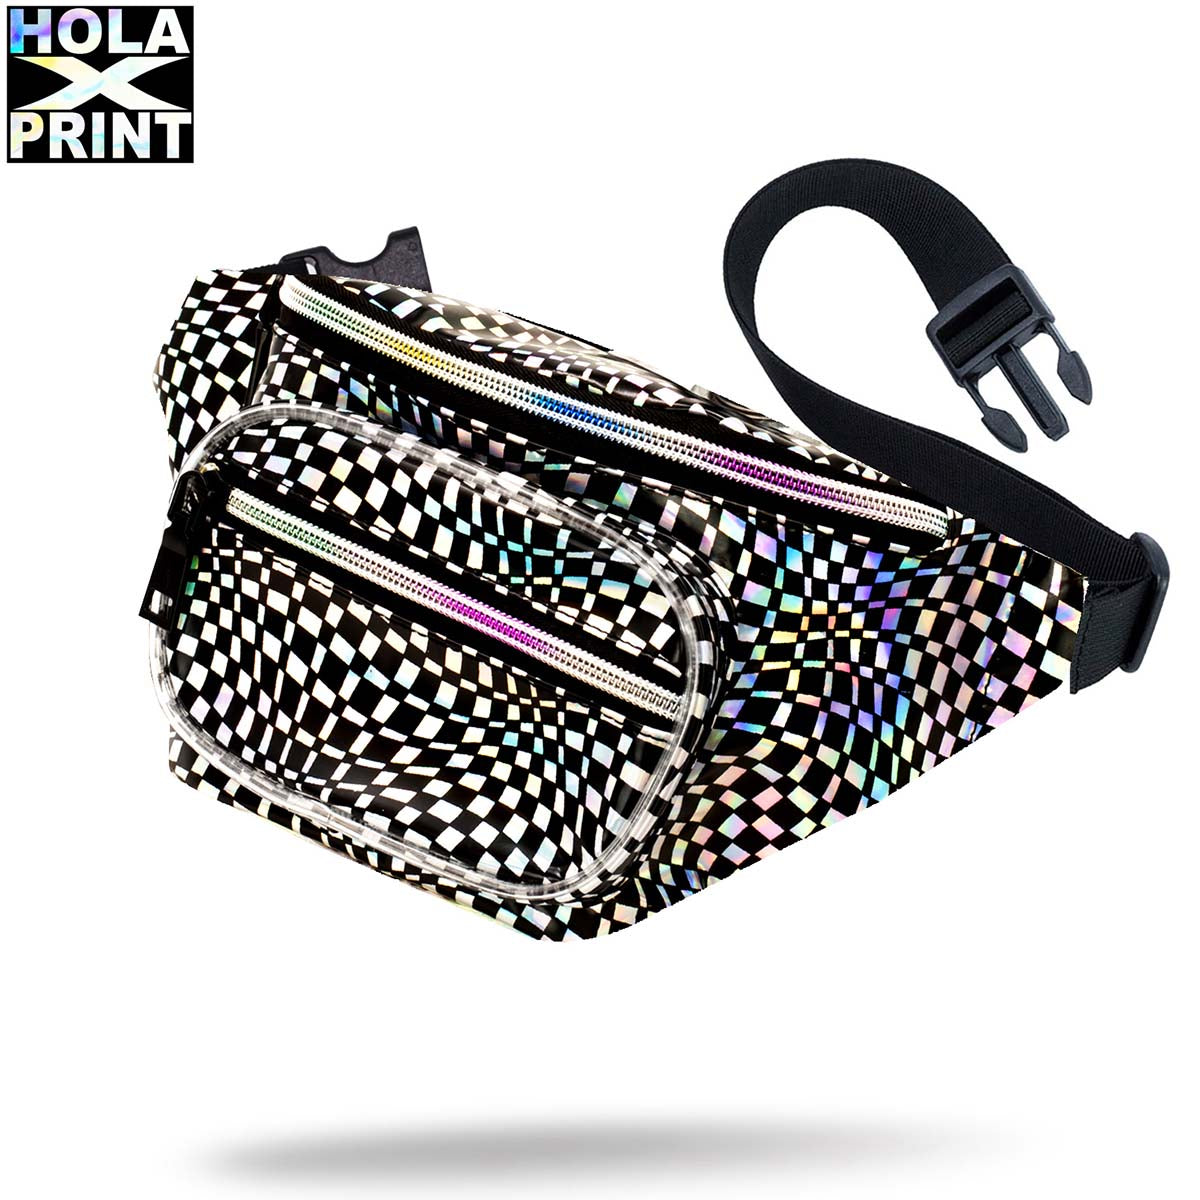 Holographic Sling pack with rainbow zippers